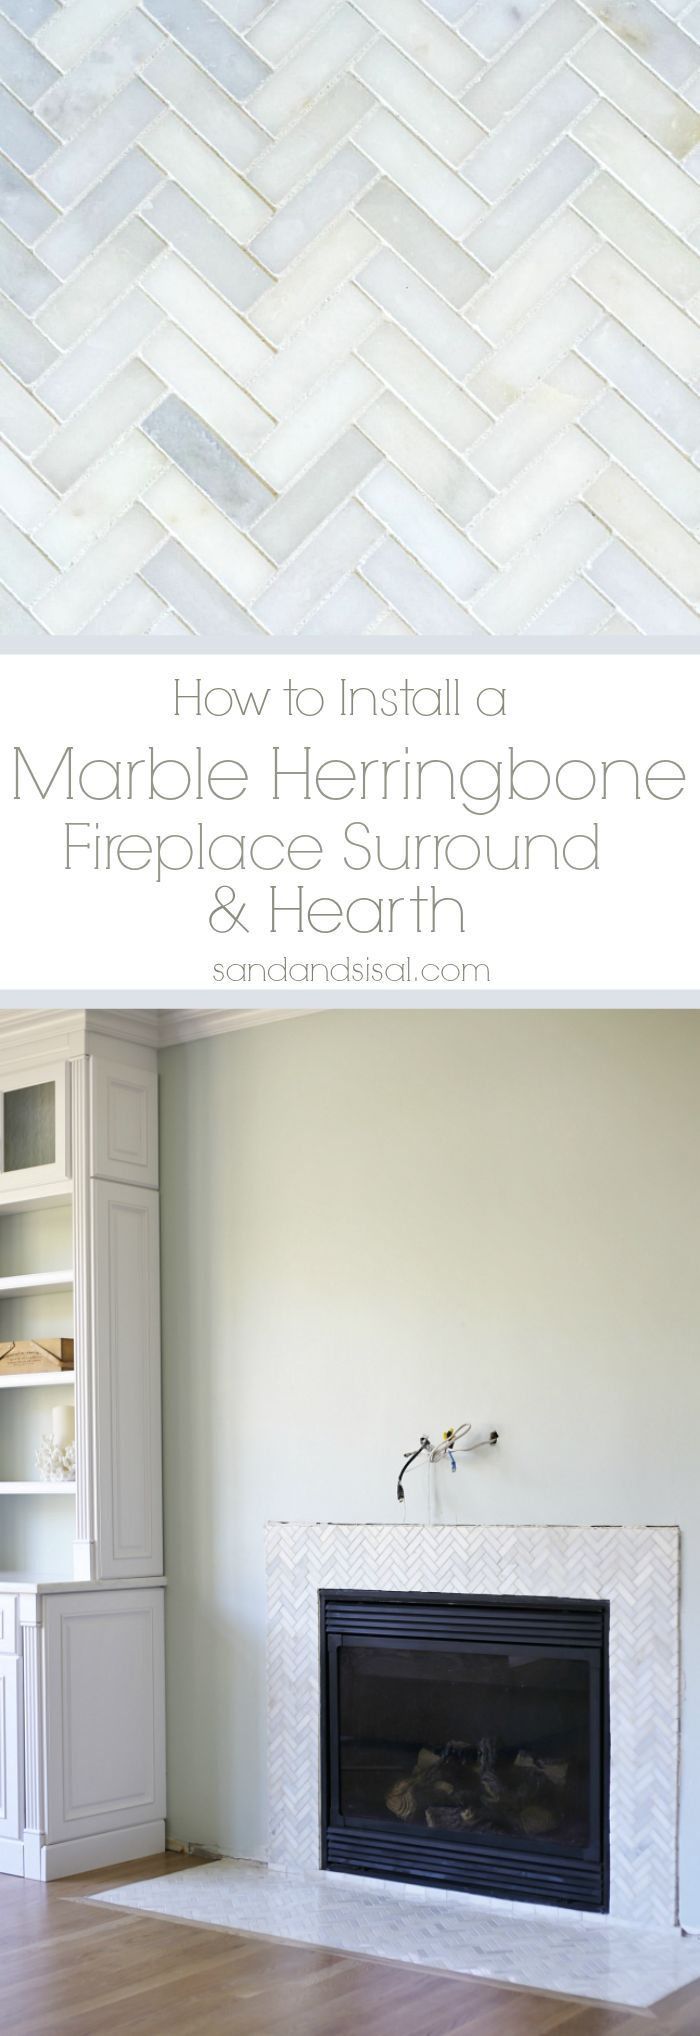 diy fireplaces u2013 how to make your own fireplace easily shiplap